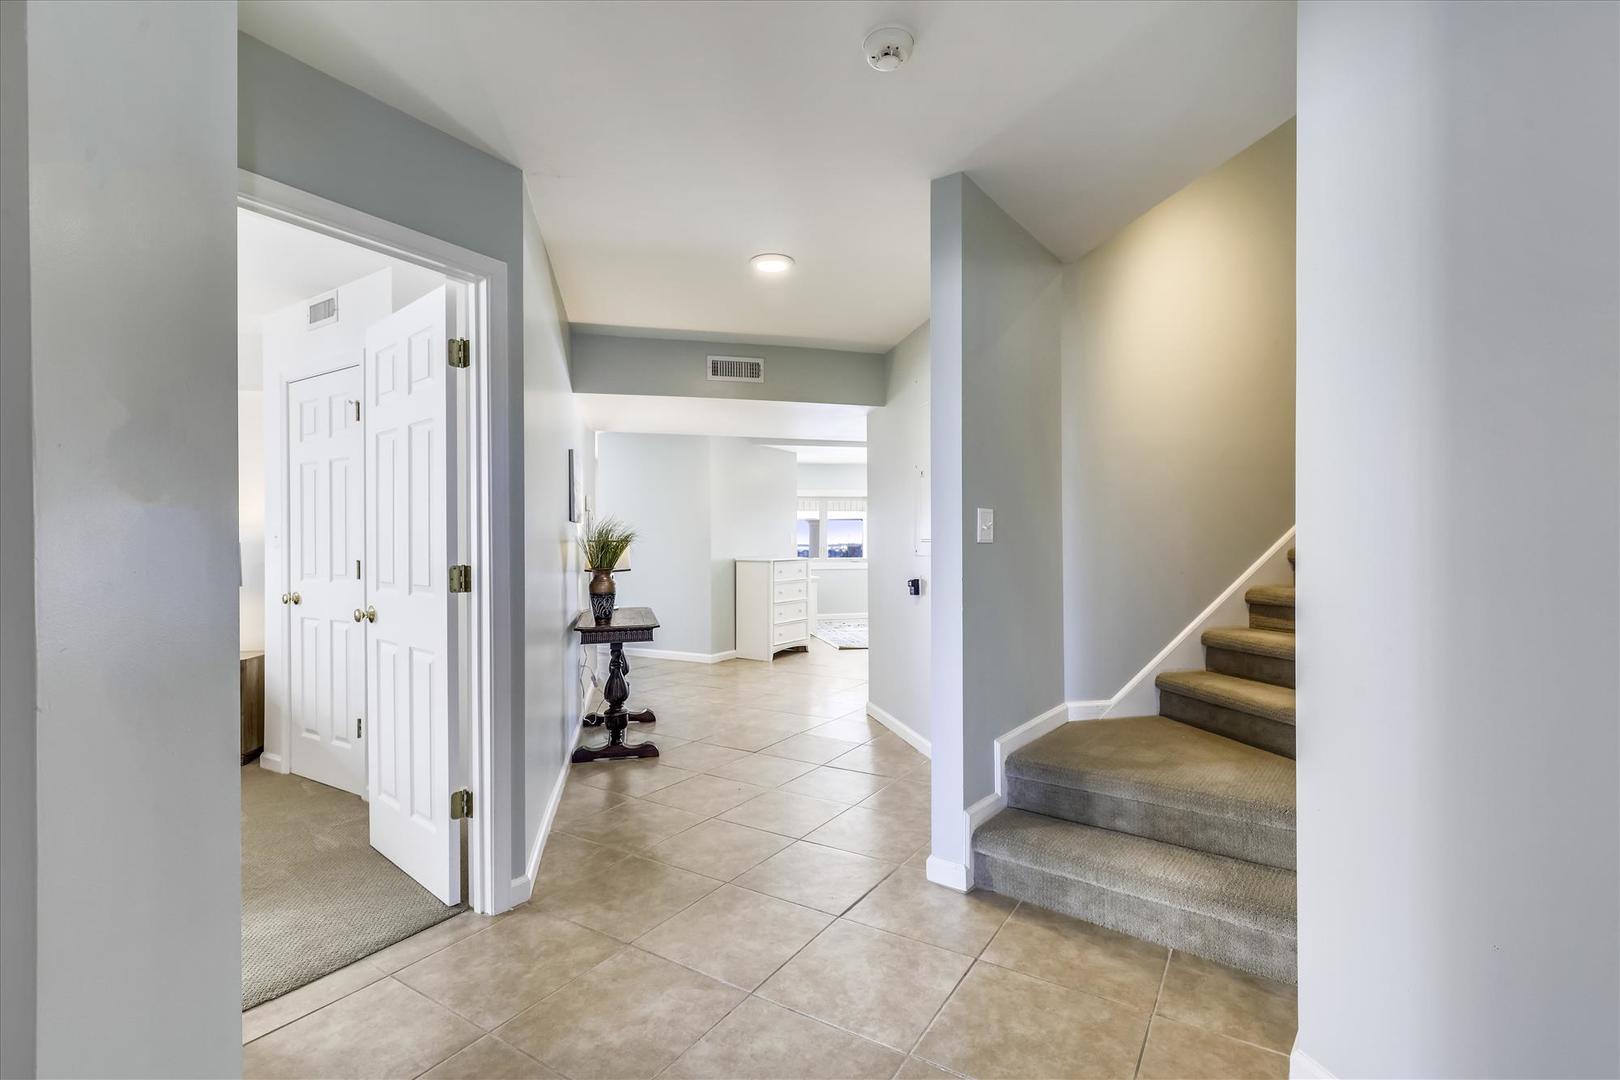 12938 Sunset Ave. - Lower Level Hallway